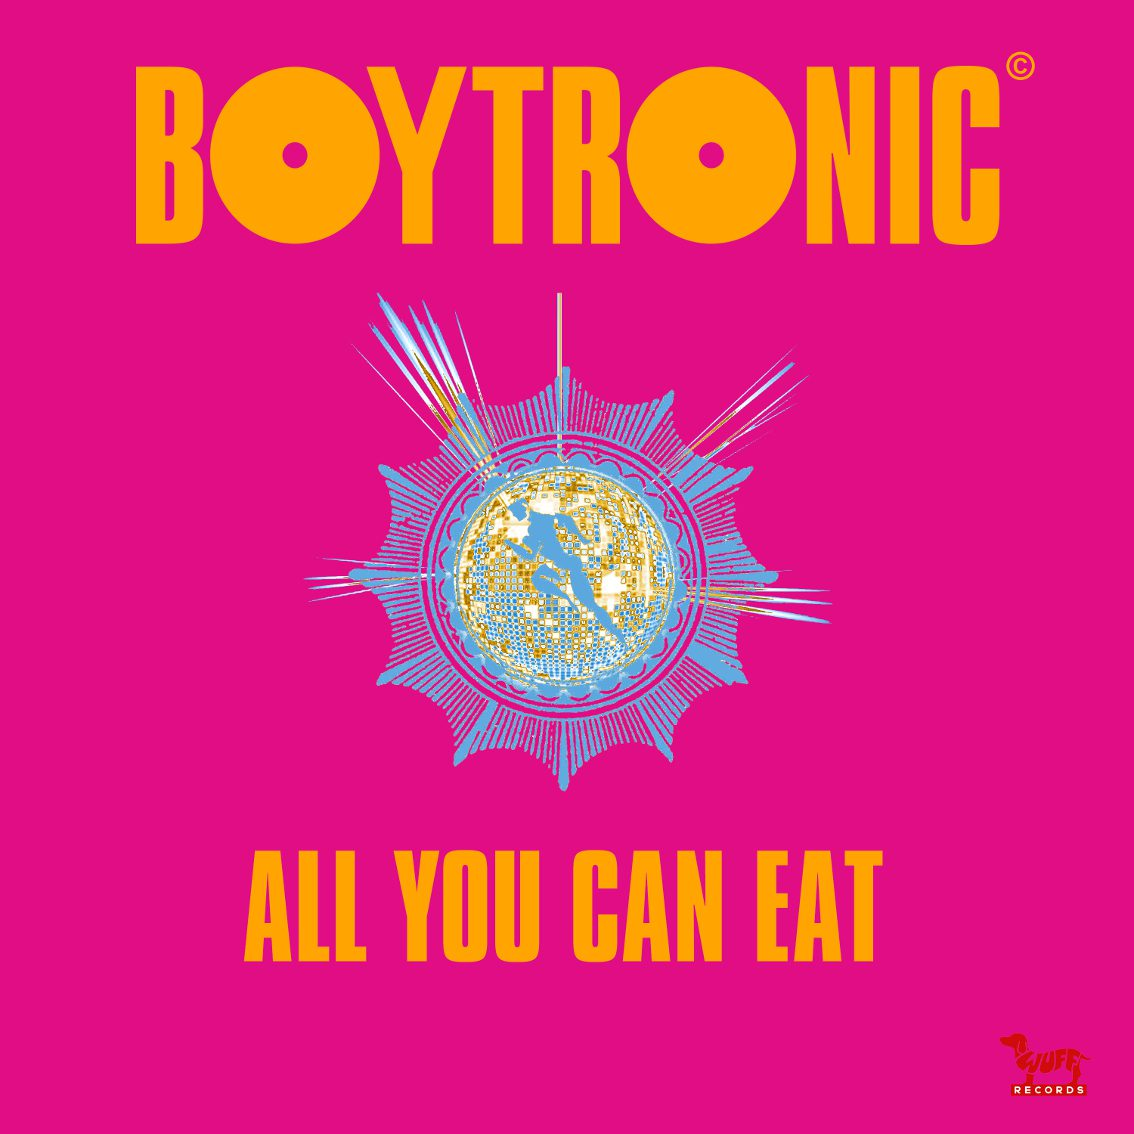 Boytronic are back! Listen to the brand new single 'All you can eat'